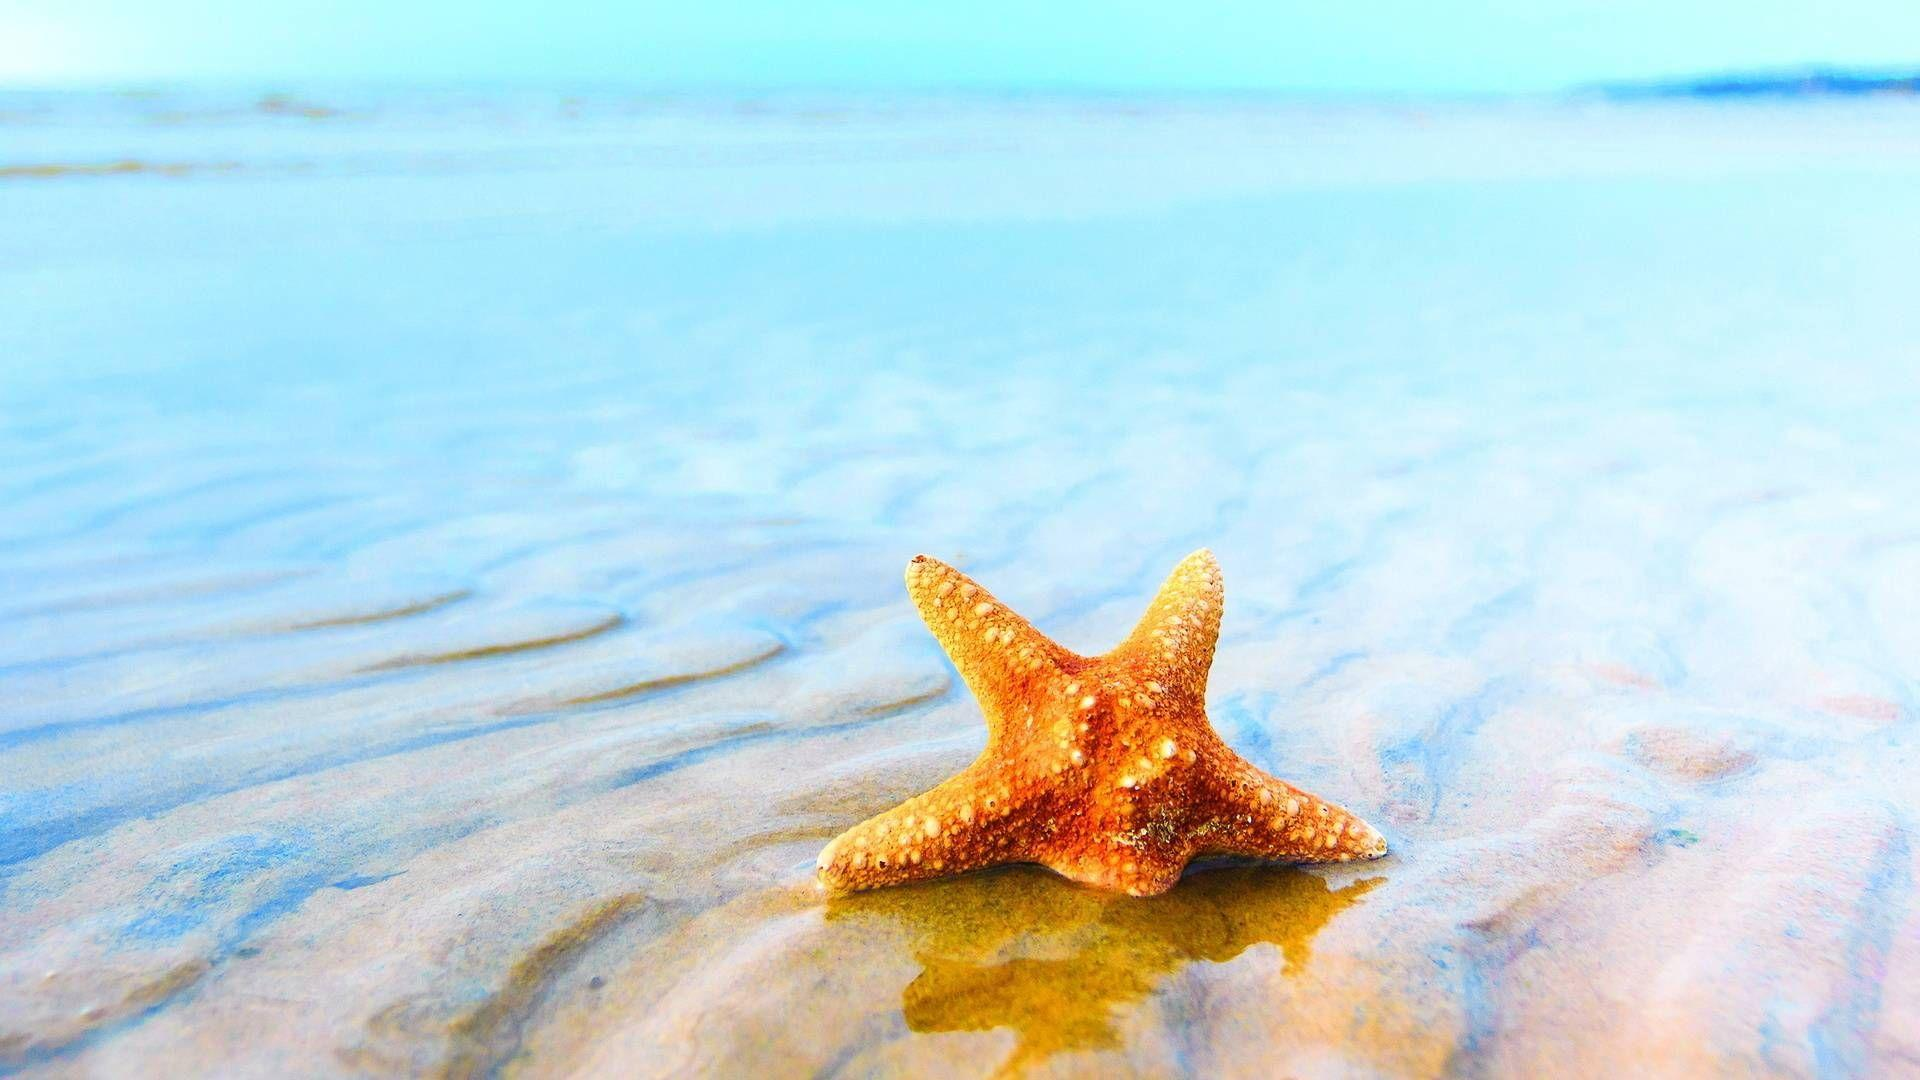 Starfish Wallpapers Wallpaper Cave HD Wallpapers Download Free Images Wallpaper [1000image.com]